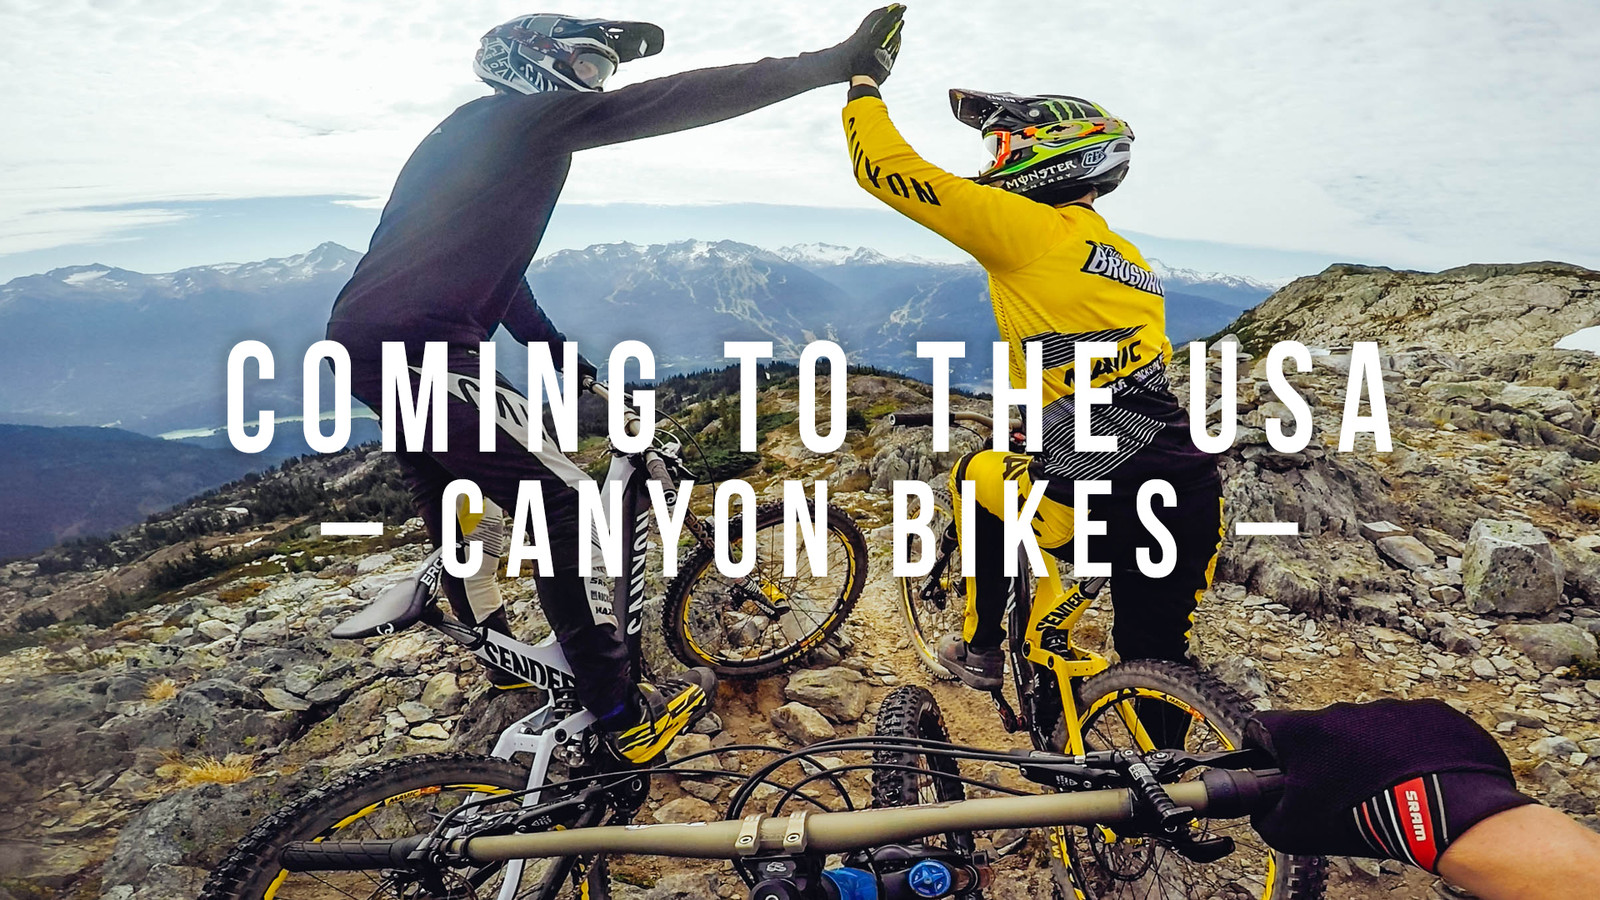 Coming to the USA - Canyon Bikes